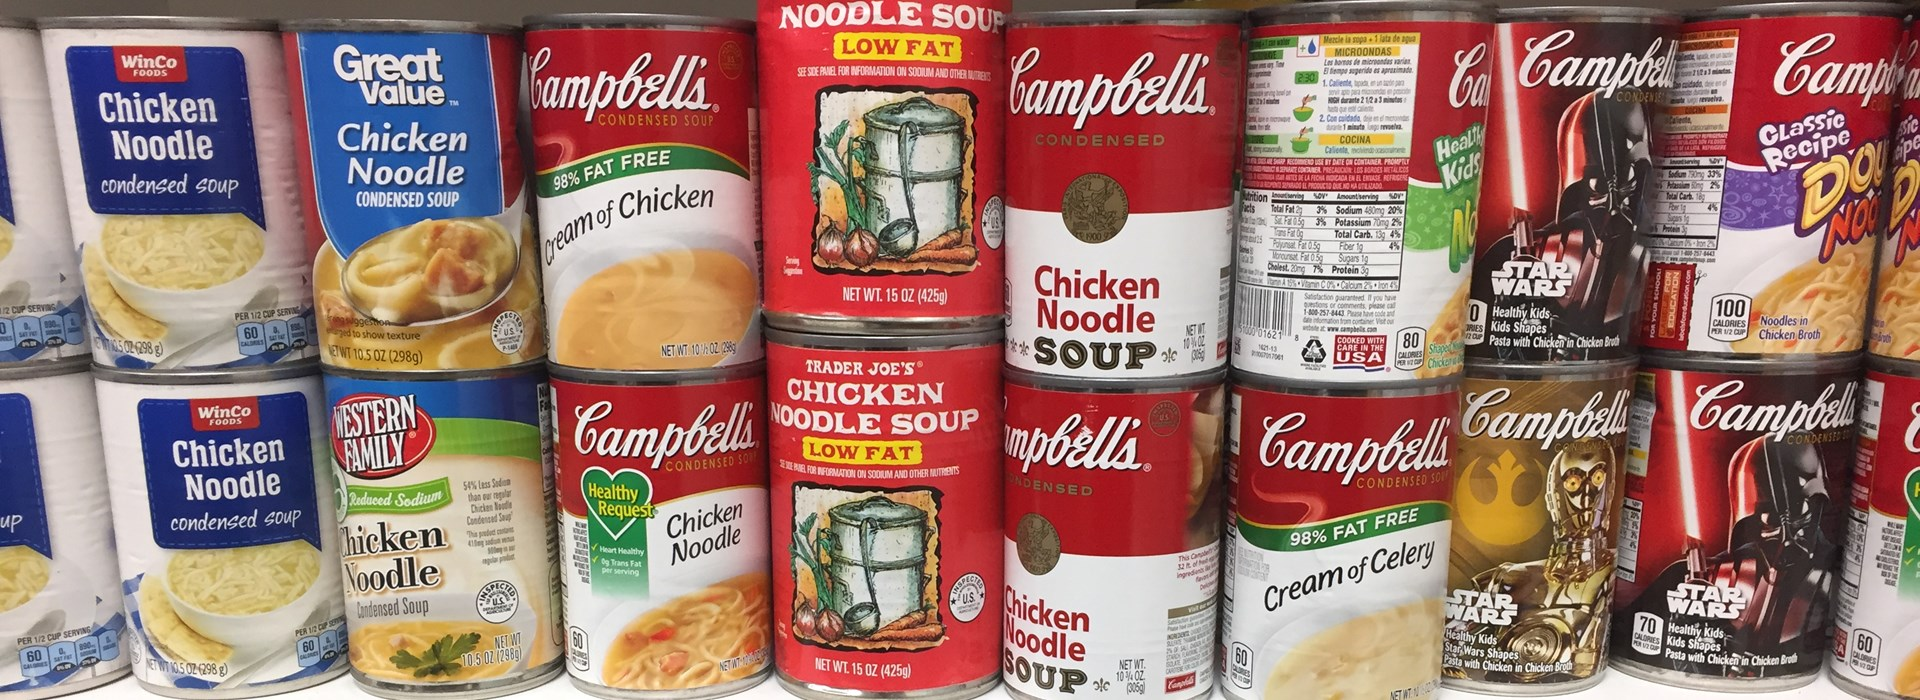 Cans of Chicken Noodle Soup